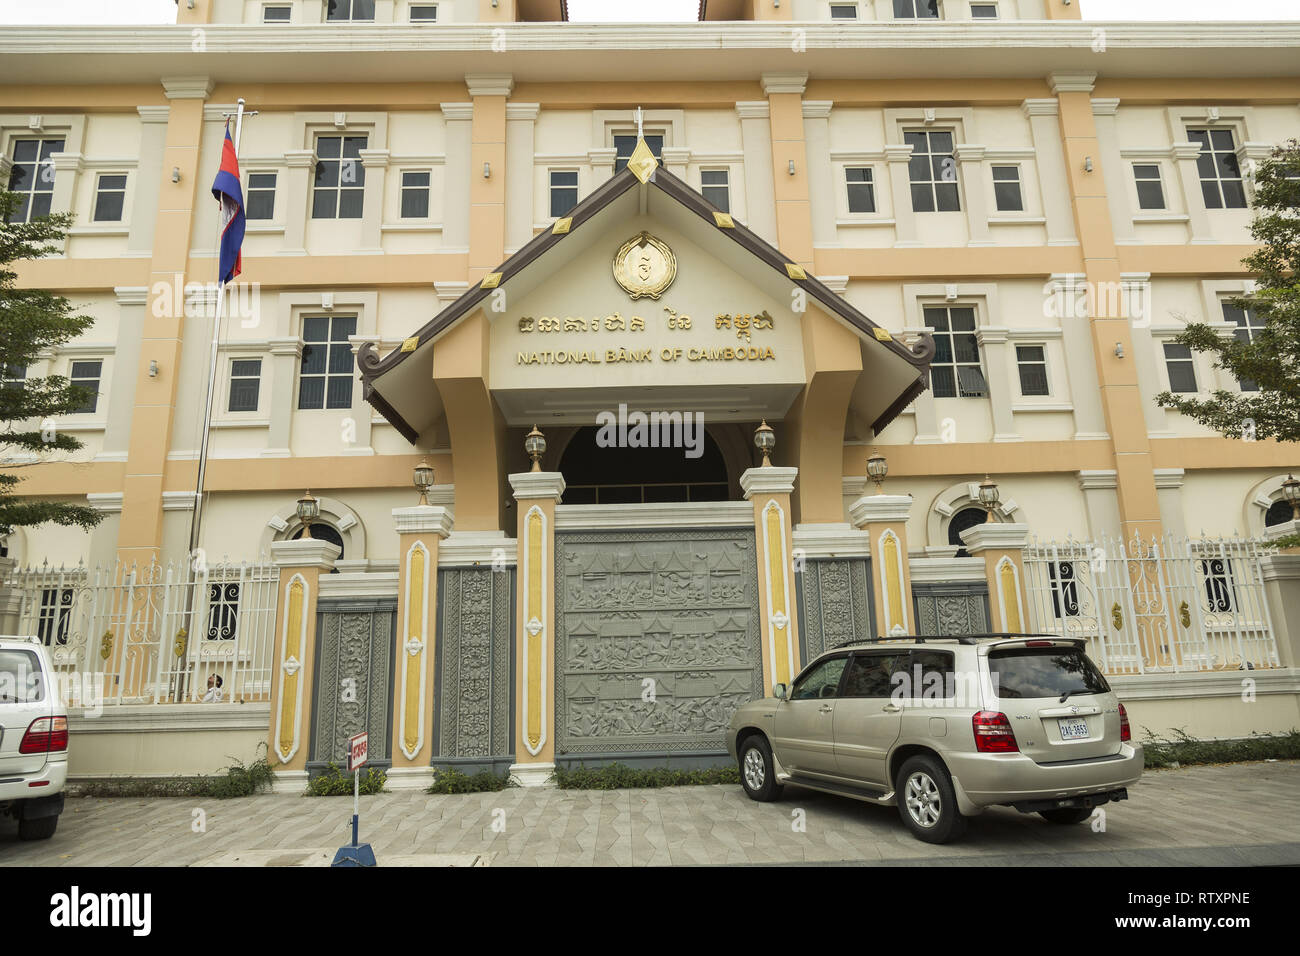 Central bank of Cambodia - Stock Image